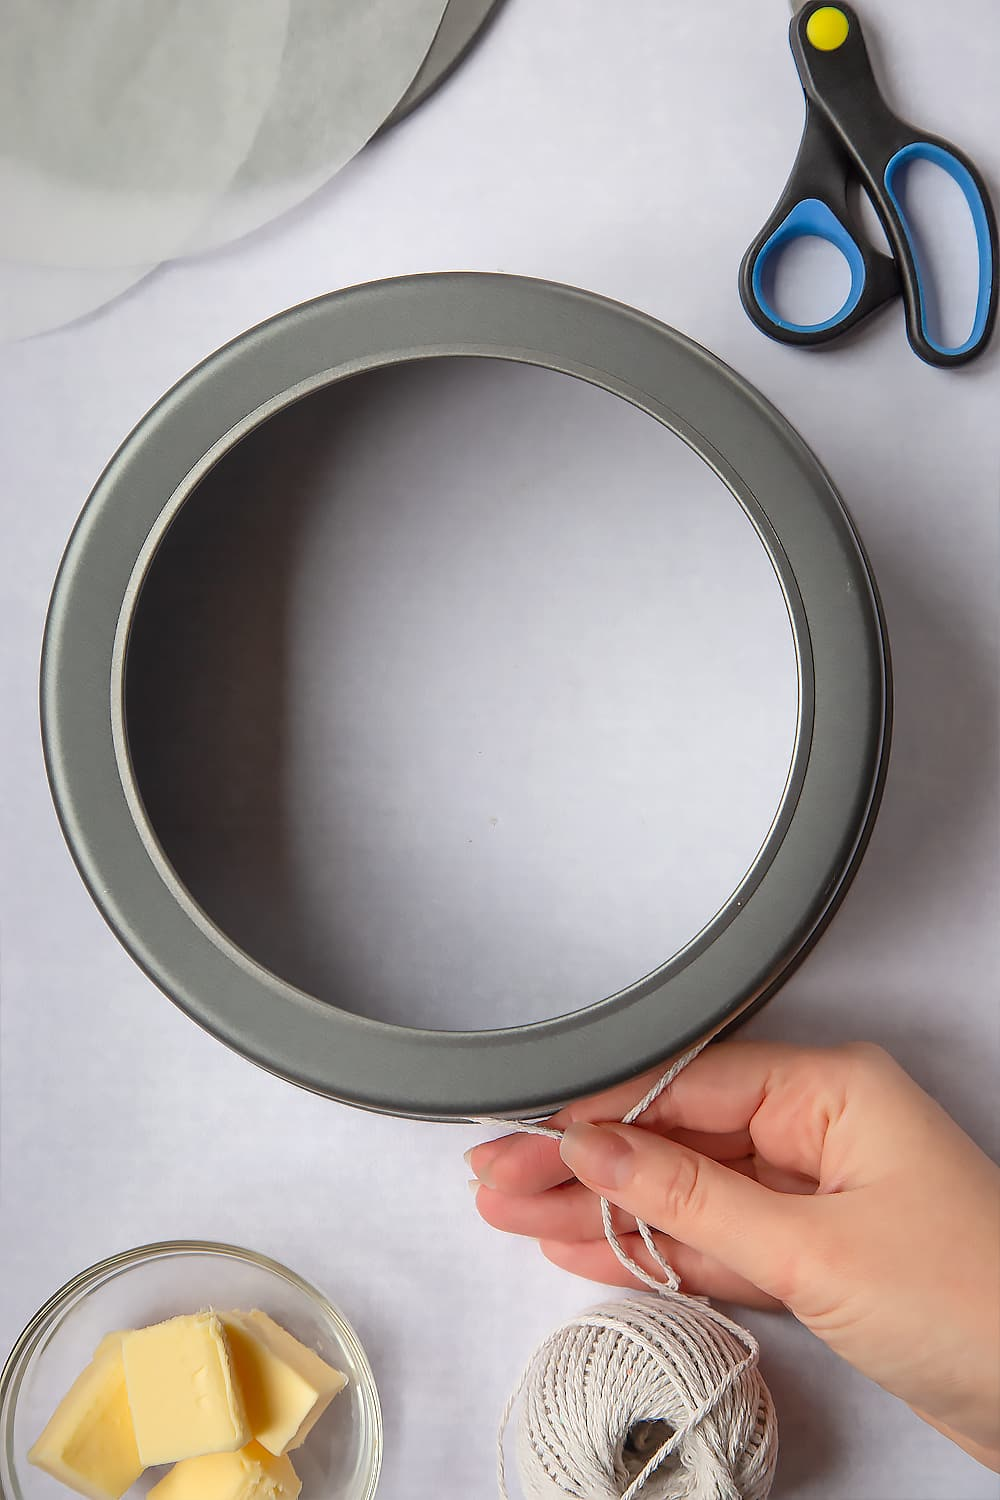 Measuring the inner lining of the cake tin using string (non-plastic) which will be cut using the scissors displayed at the side of the image.